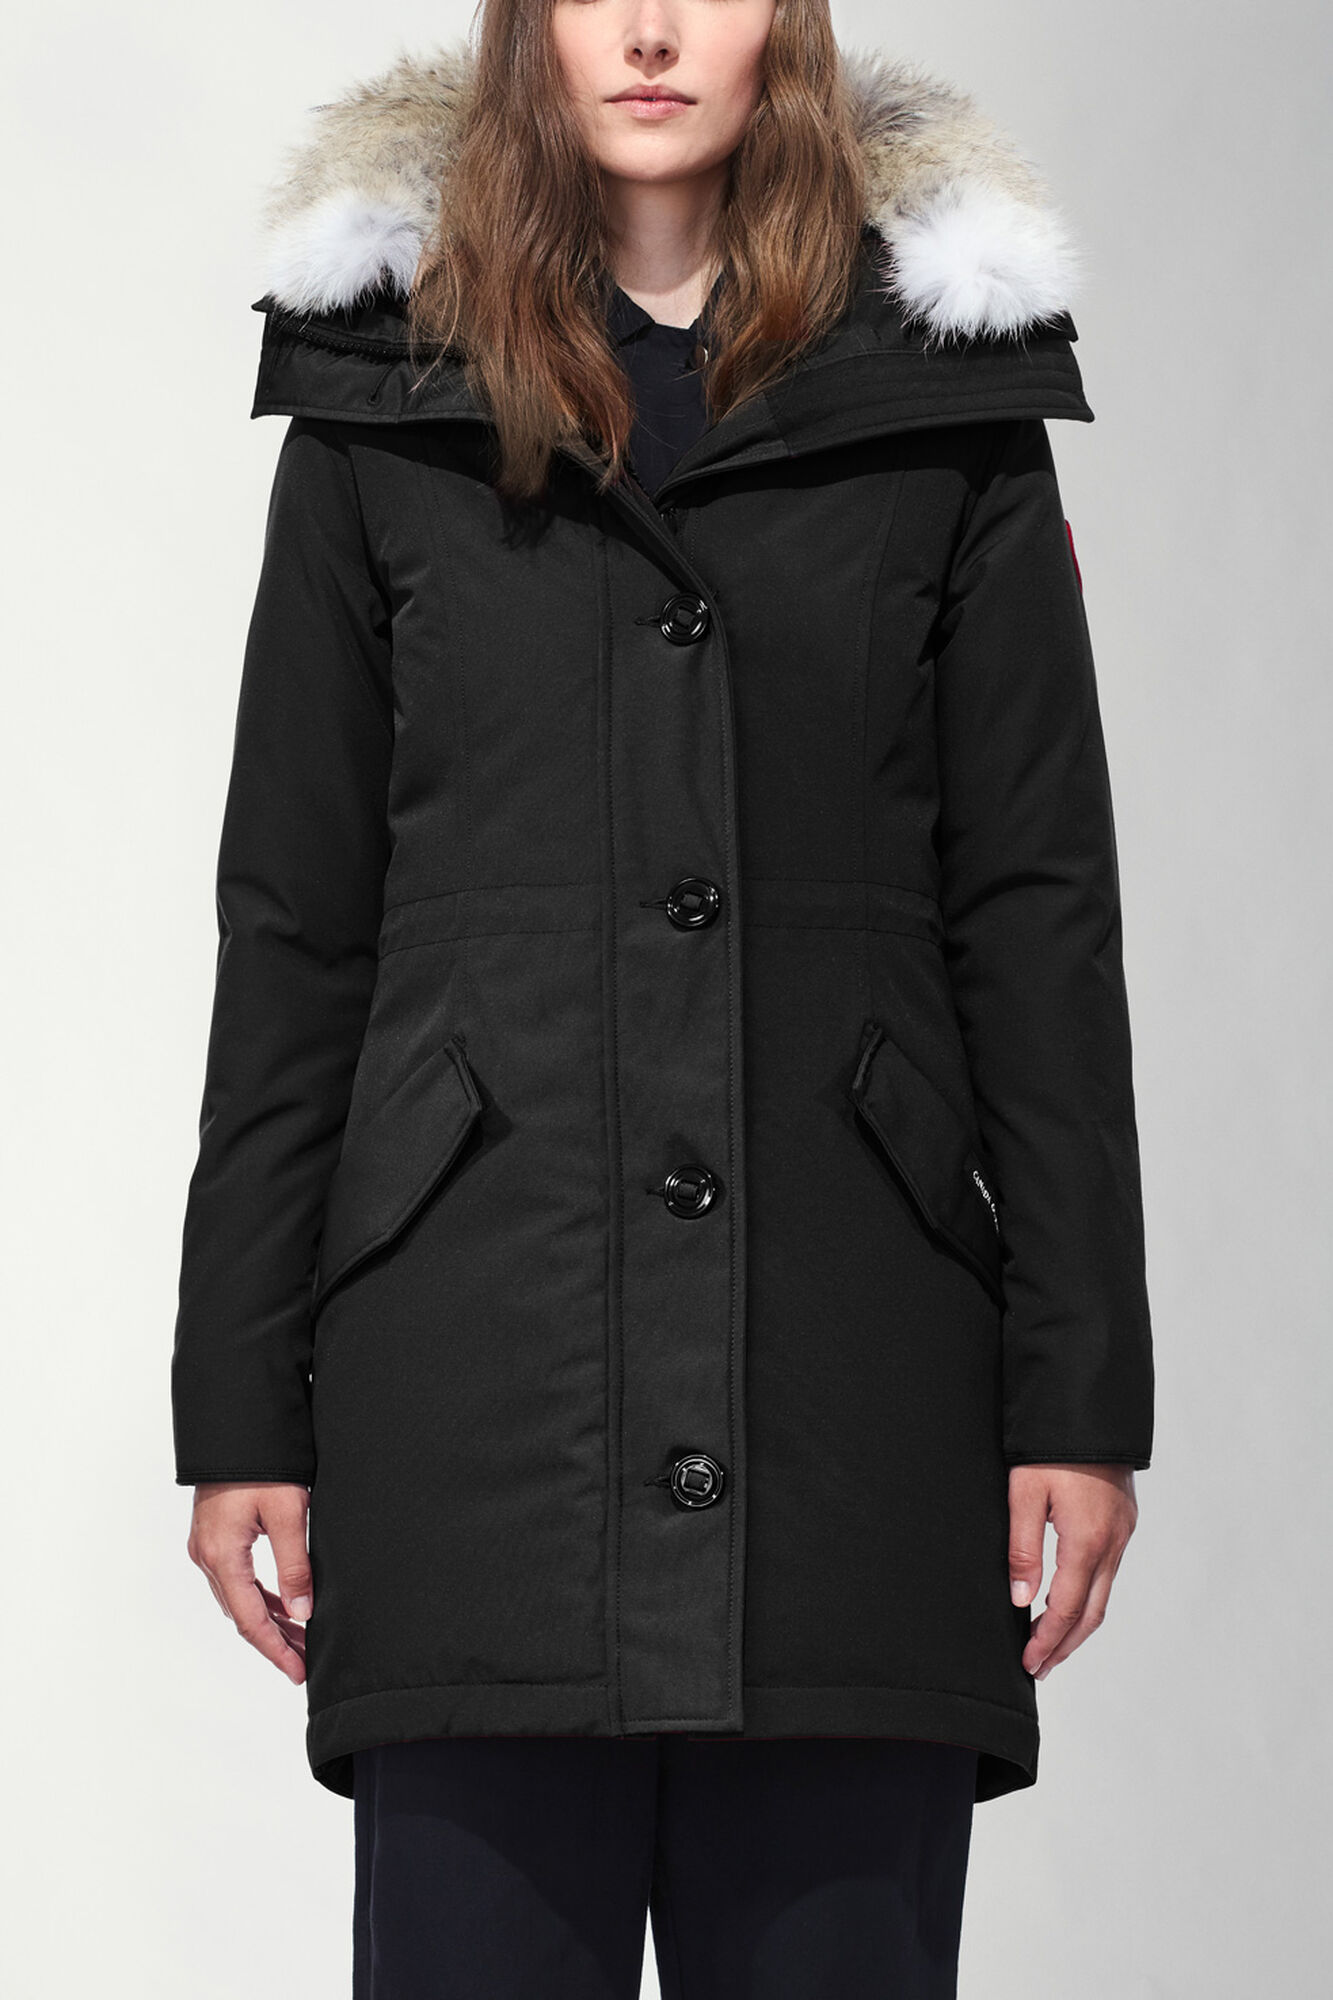 buy canada goose jacket sale at outlet with top quality at low price